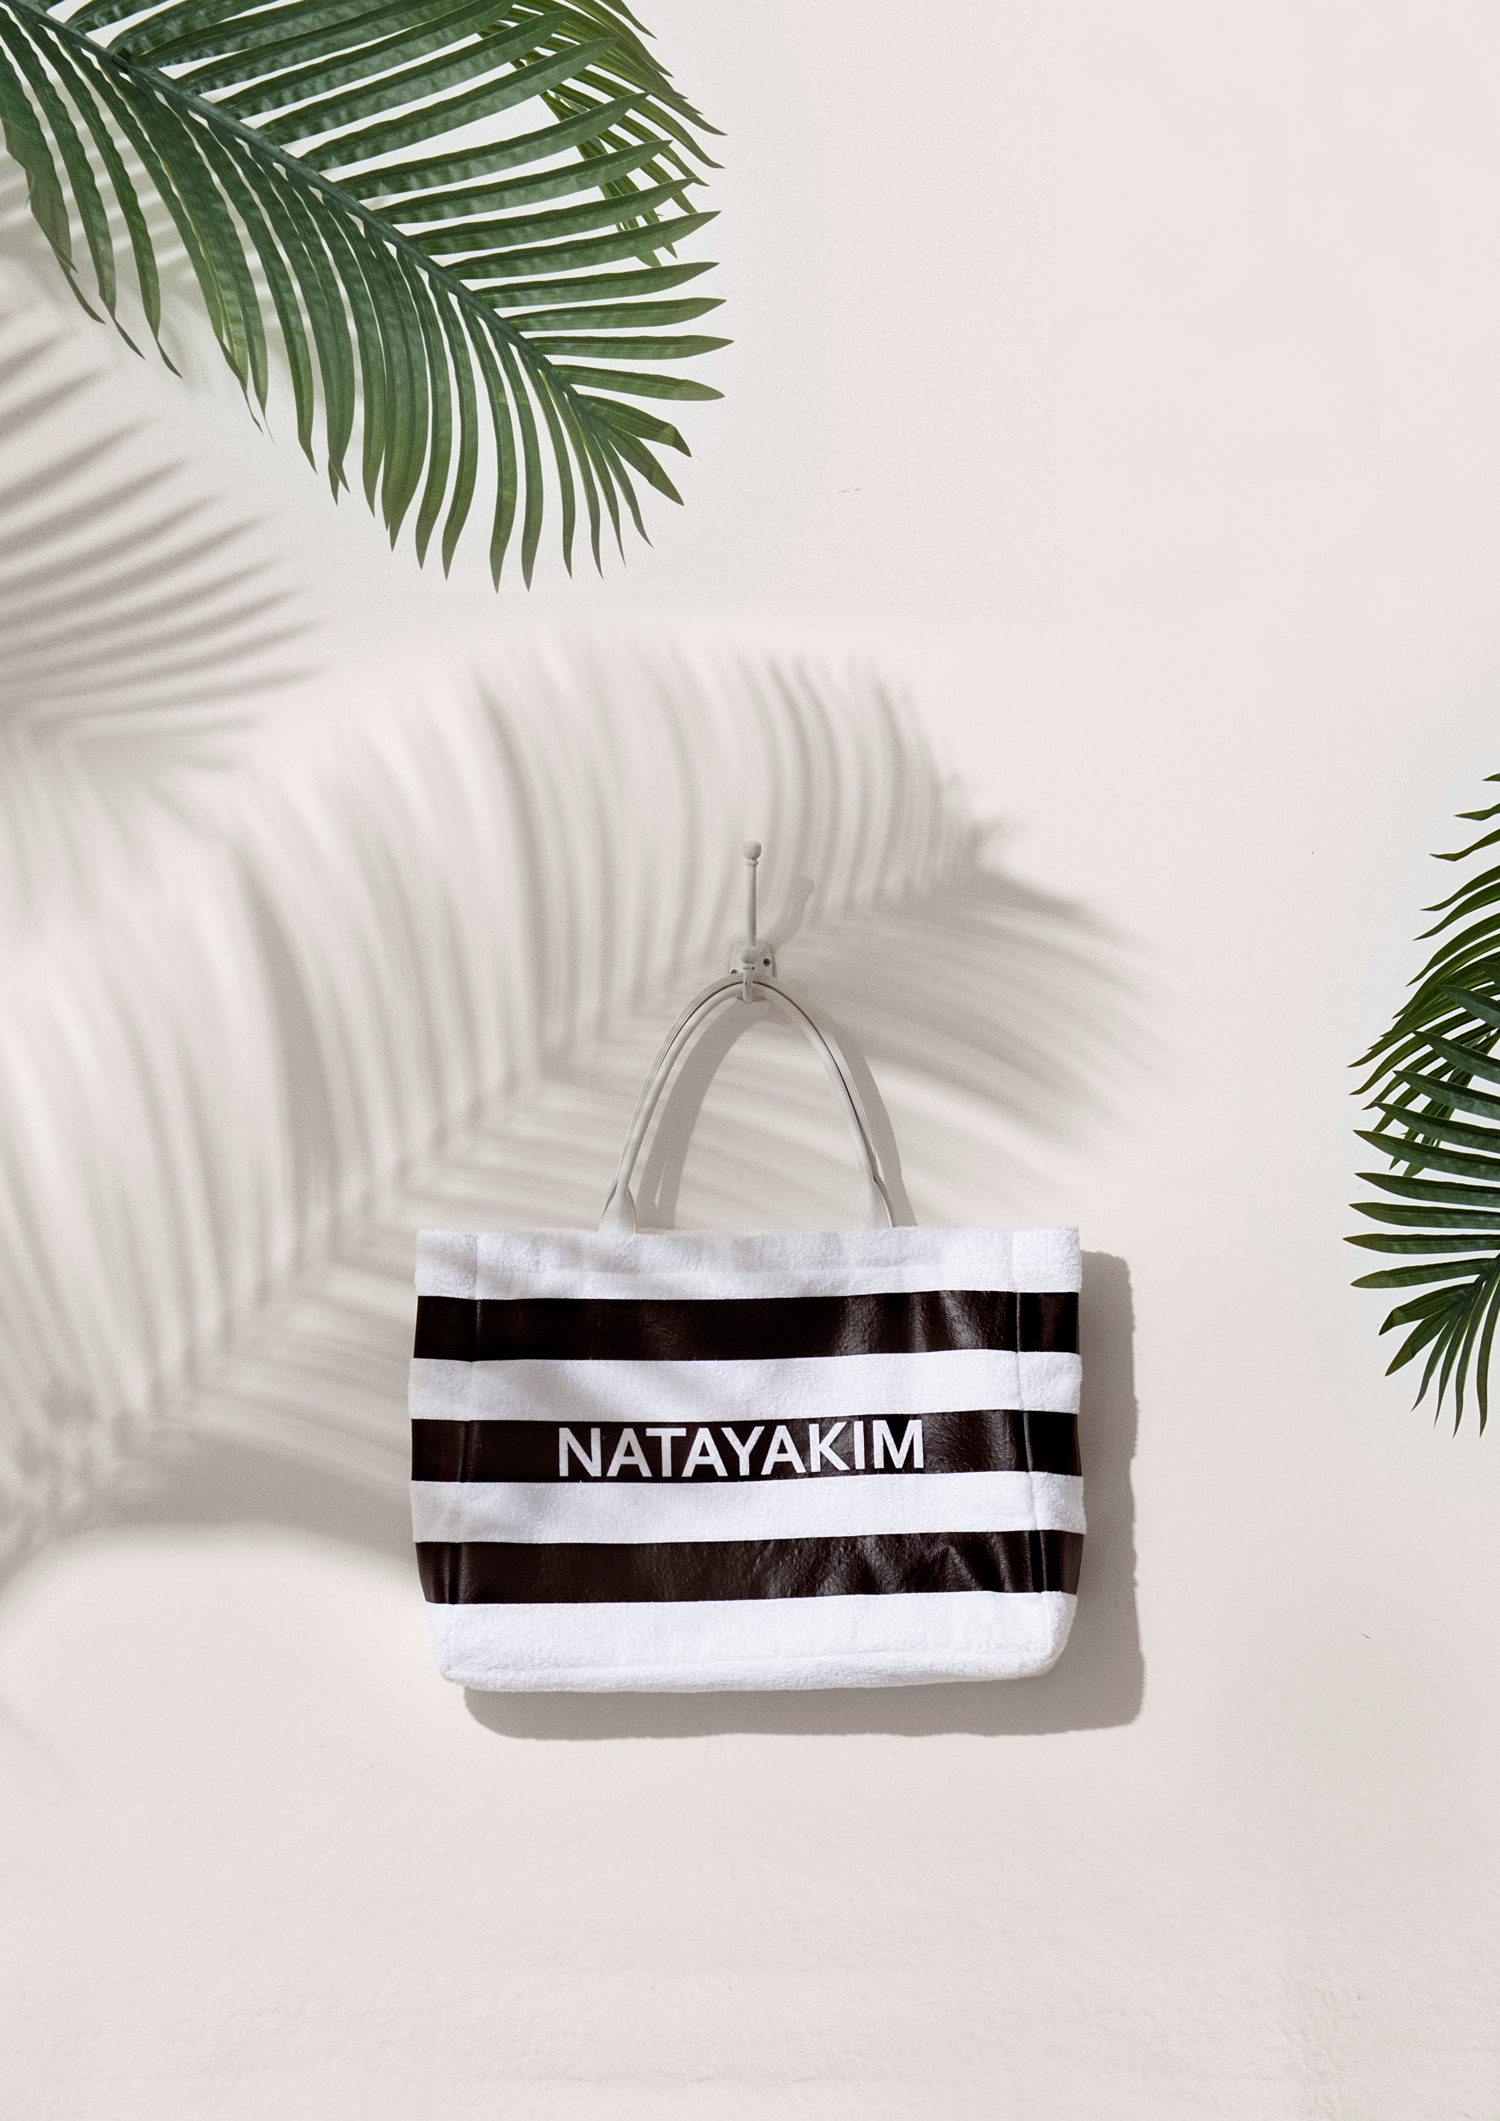 NATAYAKIM Beach bag